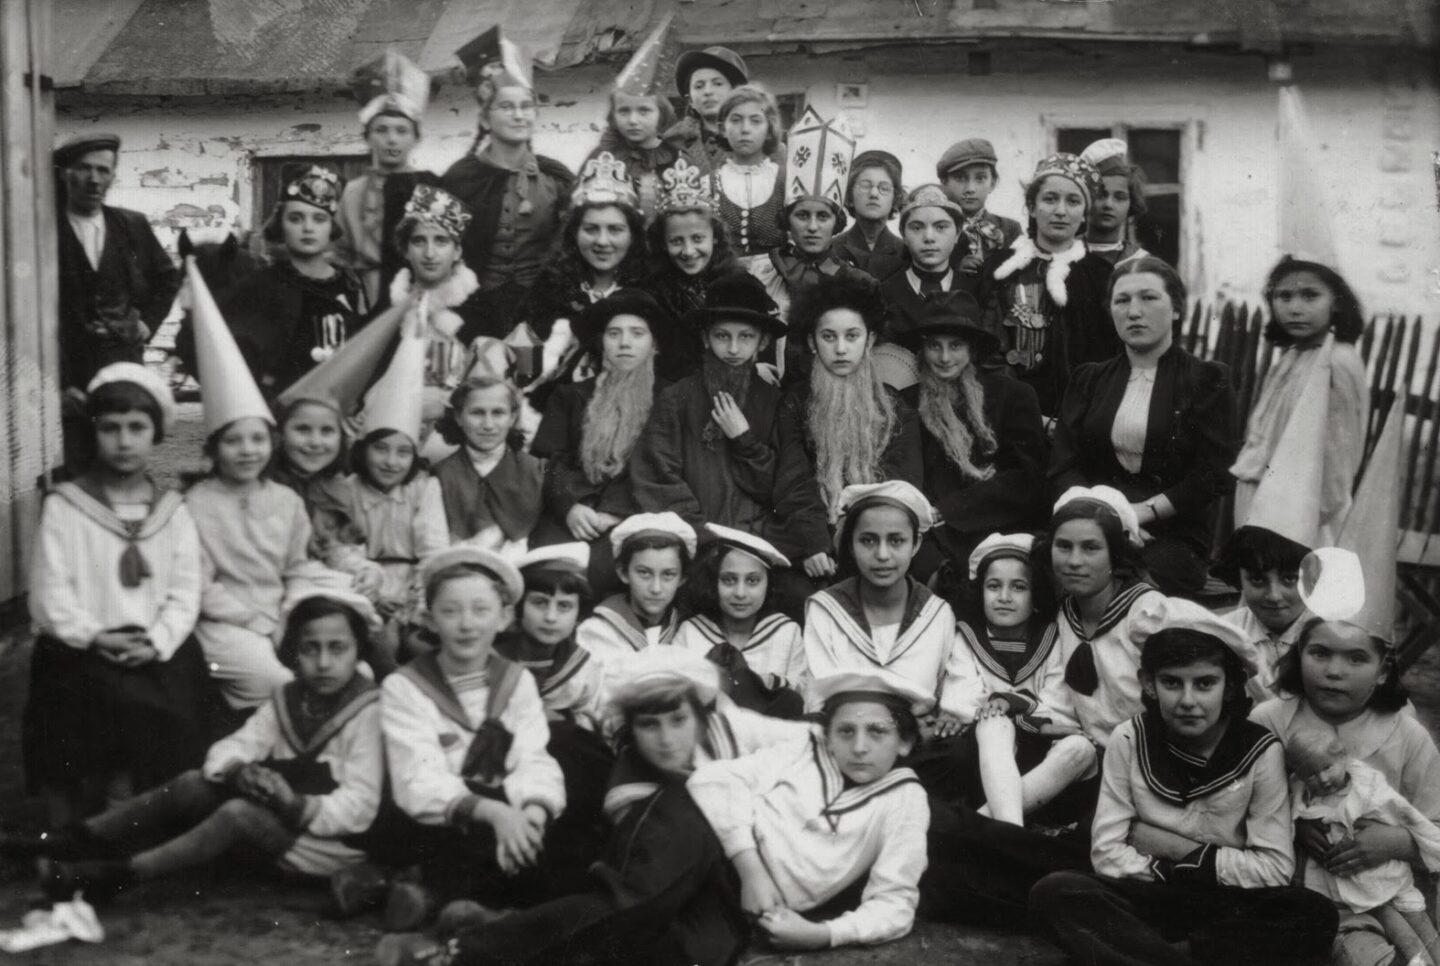 """<p>A Purim celebration in Poland, <span class=""""numbers"""">1939</span>, just a&nbsp;few years after Manger's <em>Megile</em> was published. Motl Didner of the Folksbiene Theatre specifically <a href=""""https://www.yiddishbookcenter.org/language-literature-culture/yiddish-literature/focus-itzik-manger"""">identifies</a> Manger's book in the context of and as a&nbsp;commentary on European antisemitism preceding World War <span class=""""caps"""">II</span>. Image via&nbsp;<span class=""""caps"""">USHMM</span>.</p>"""